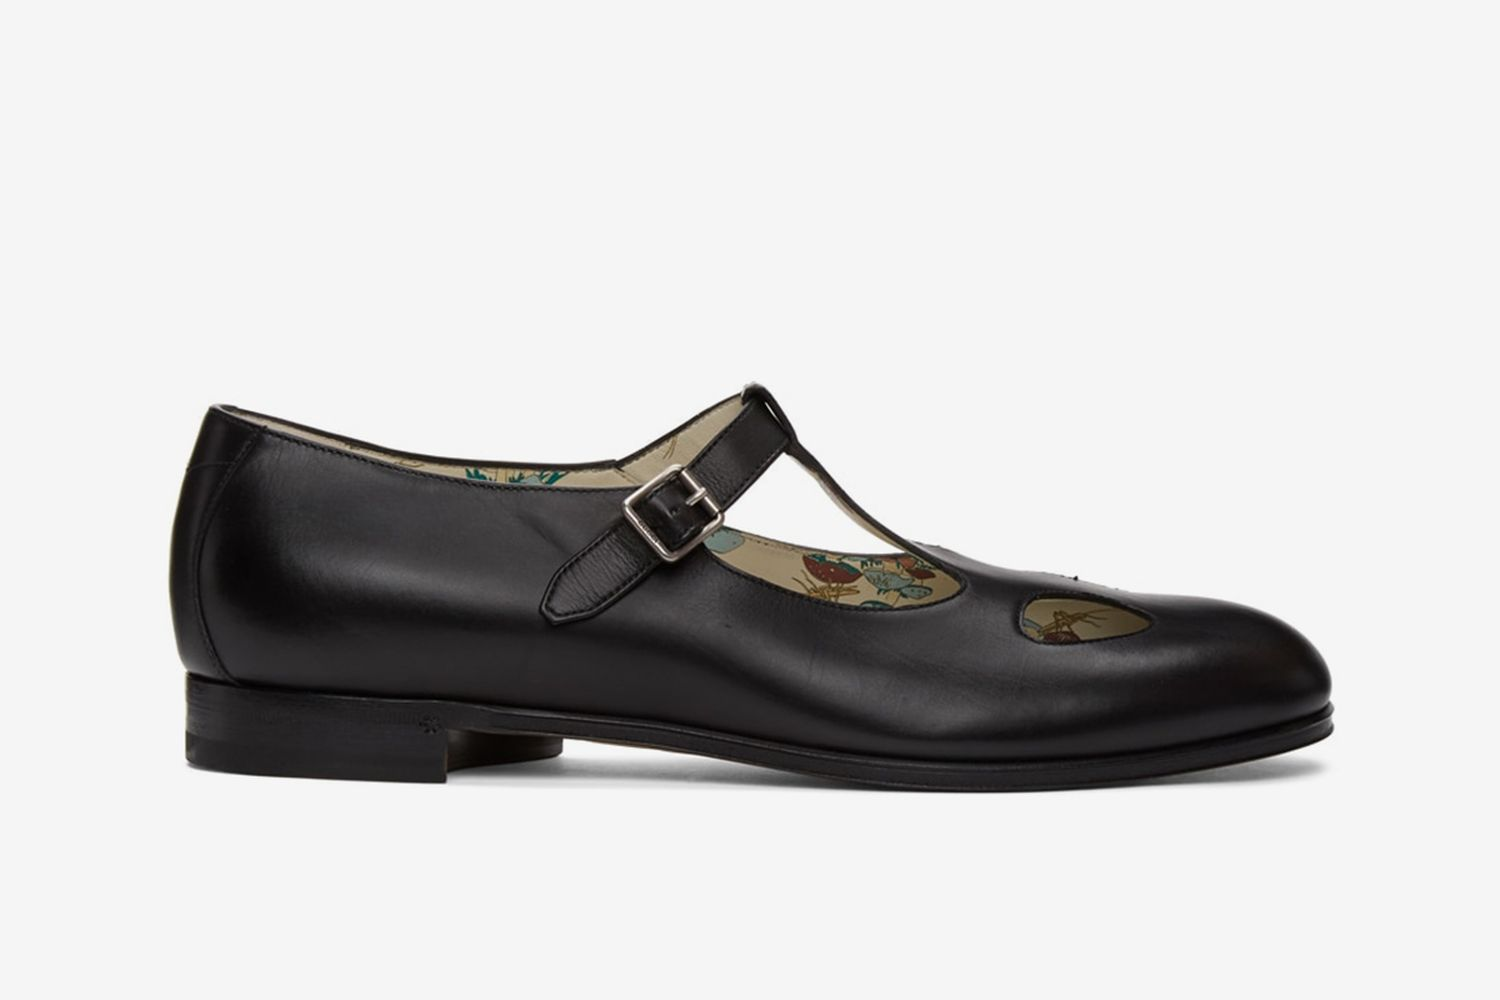 Mary Jane Cutout Loafers